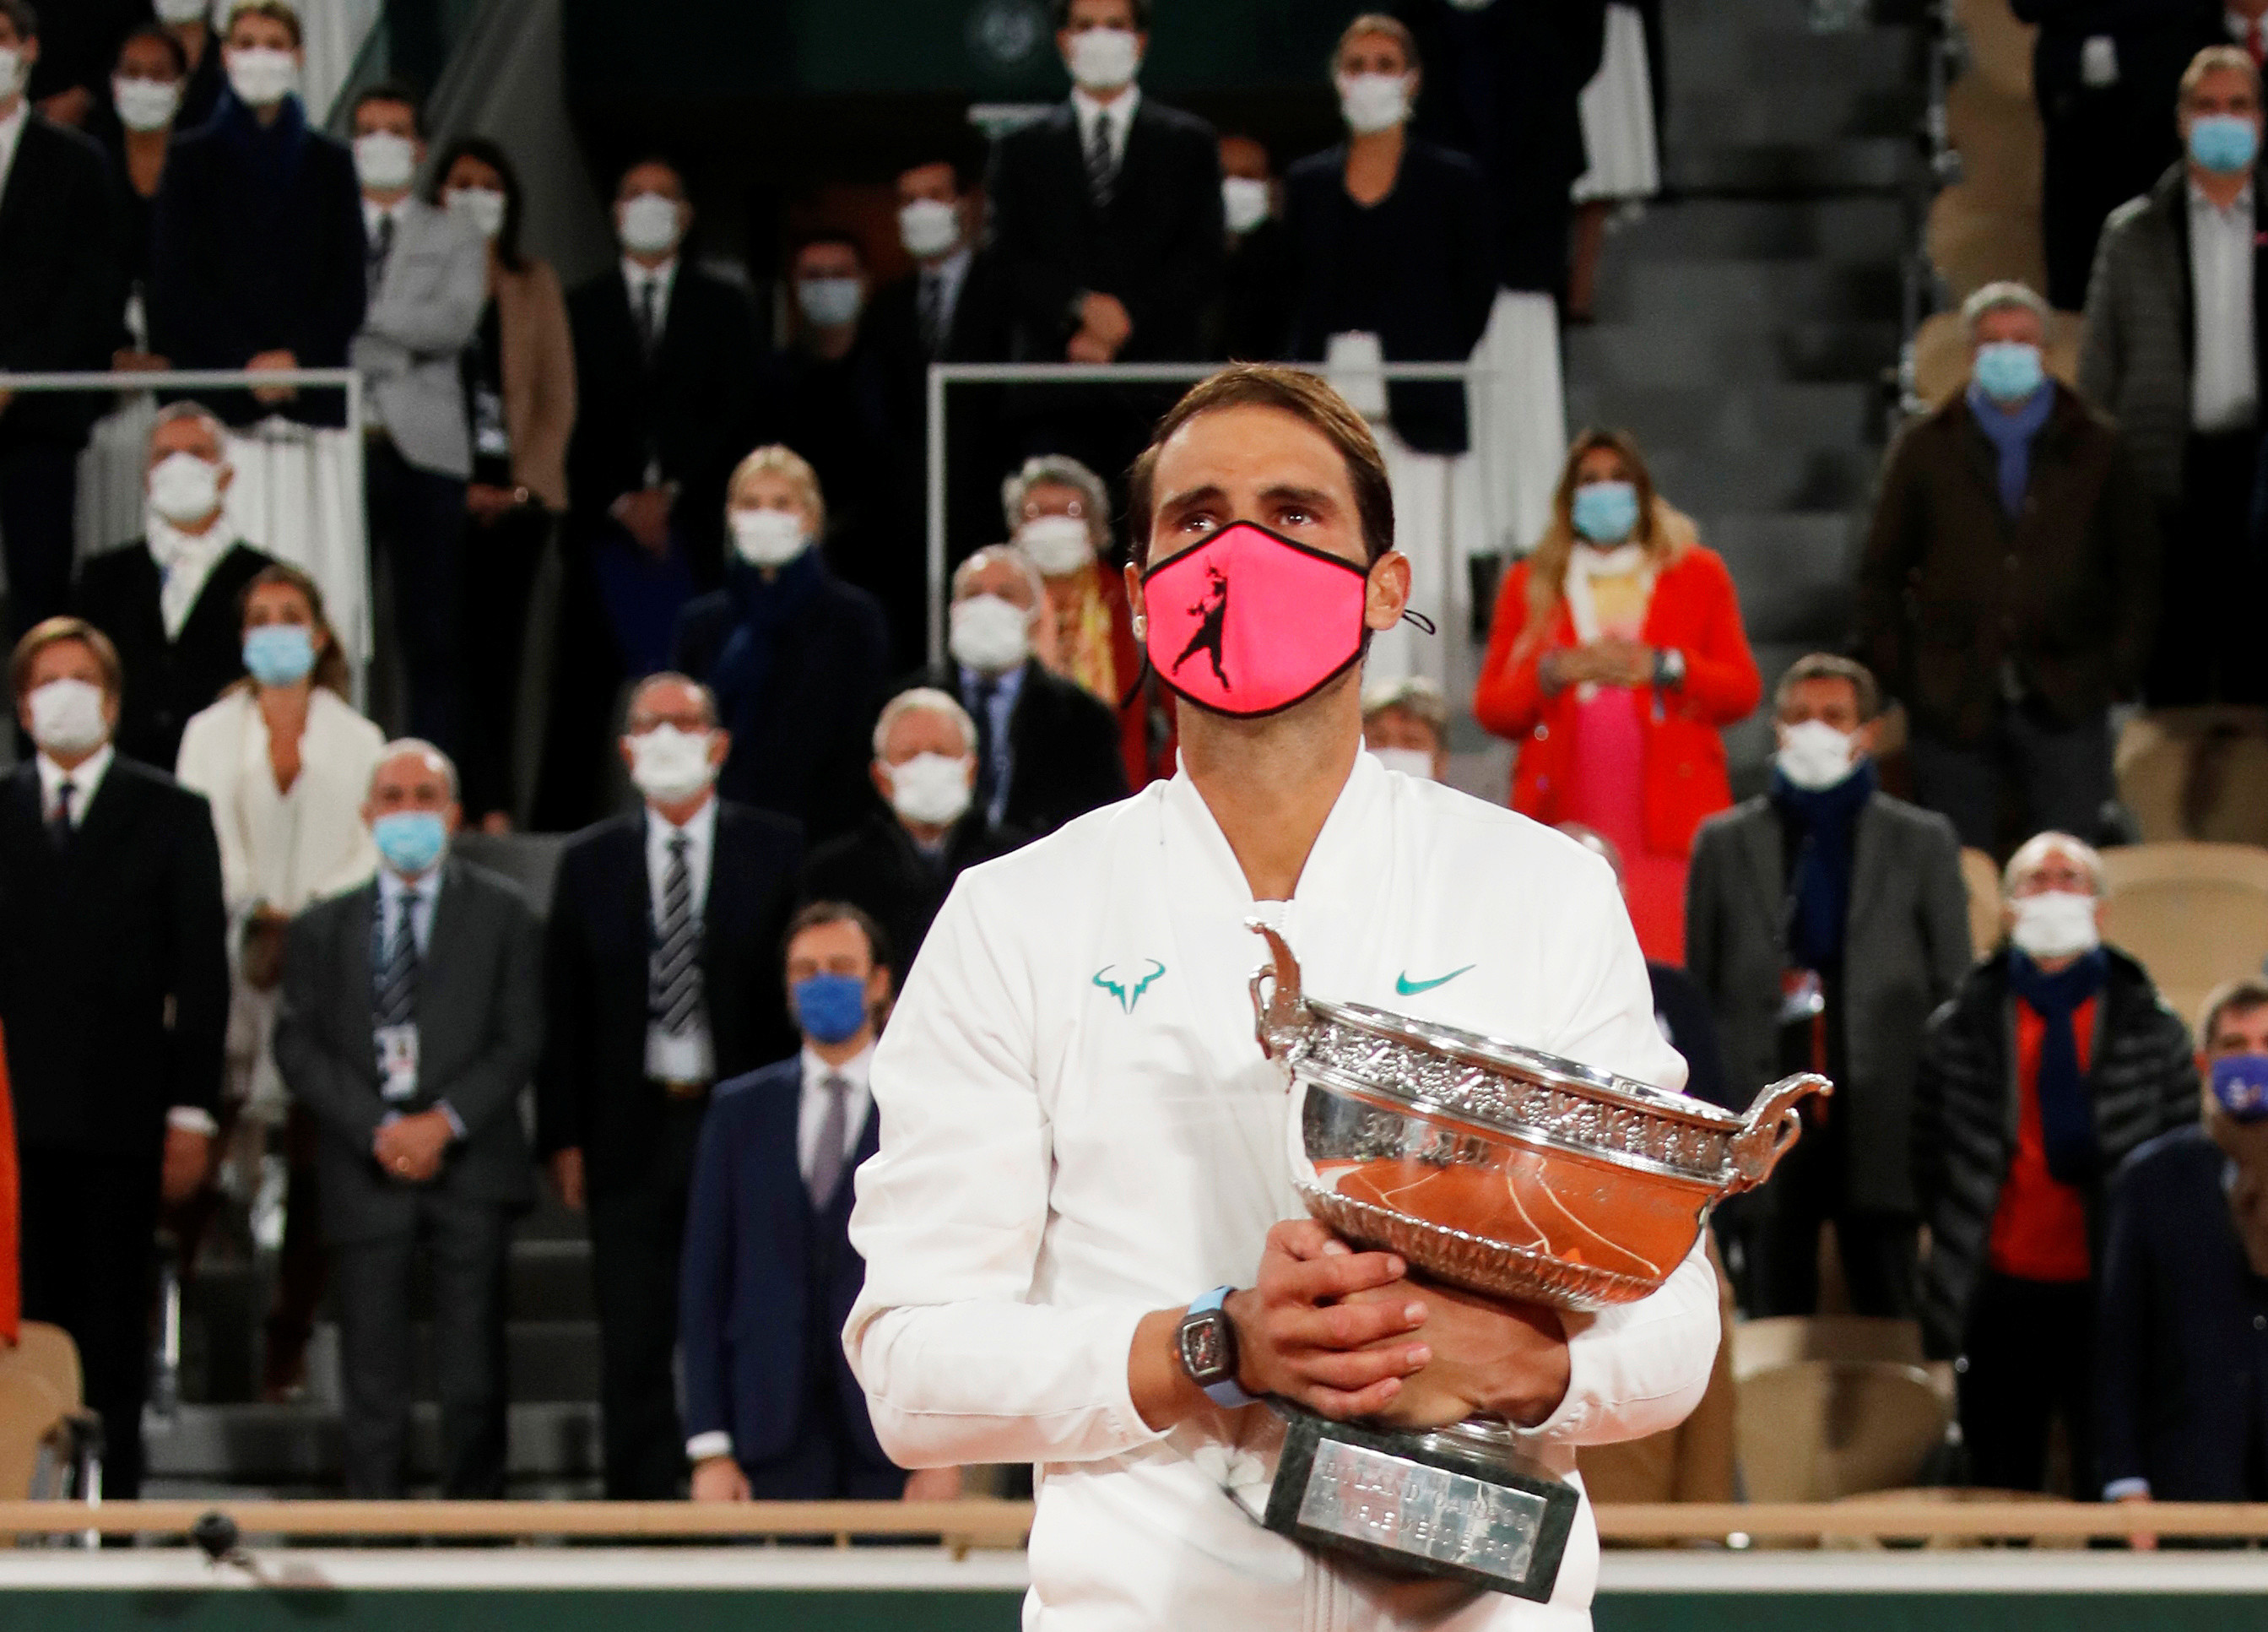 Spanish tennis player Rafael Nadal holds the trophy, while wearing a mask, after winning the French Open against Serbia's Novak Djokovic.